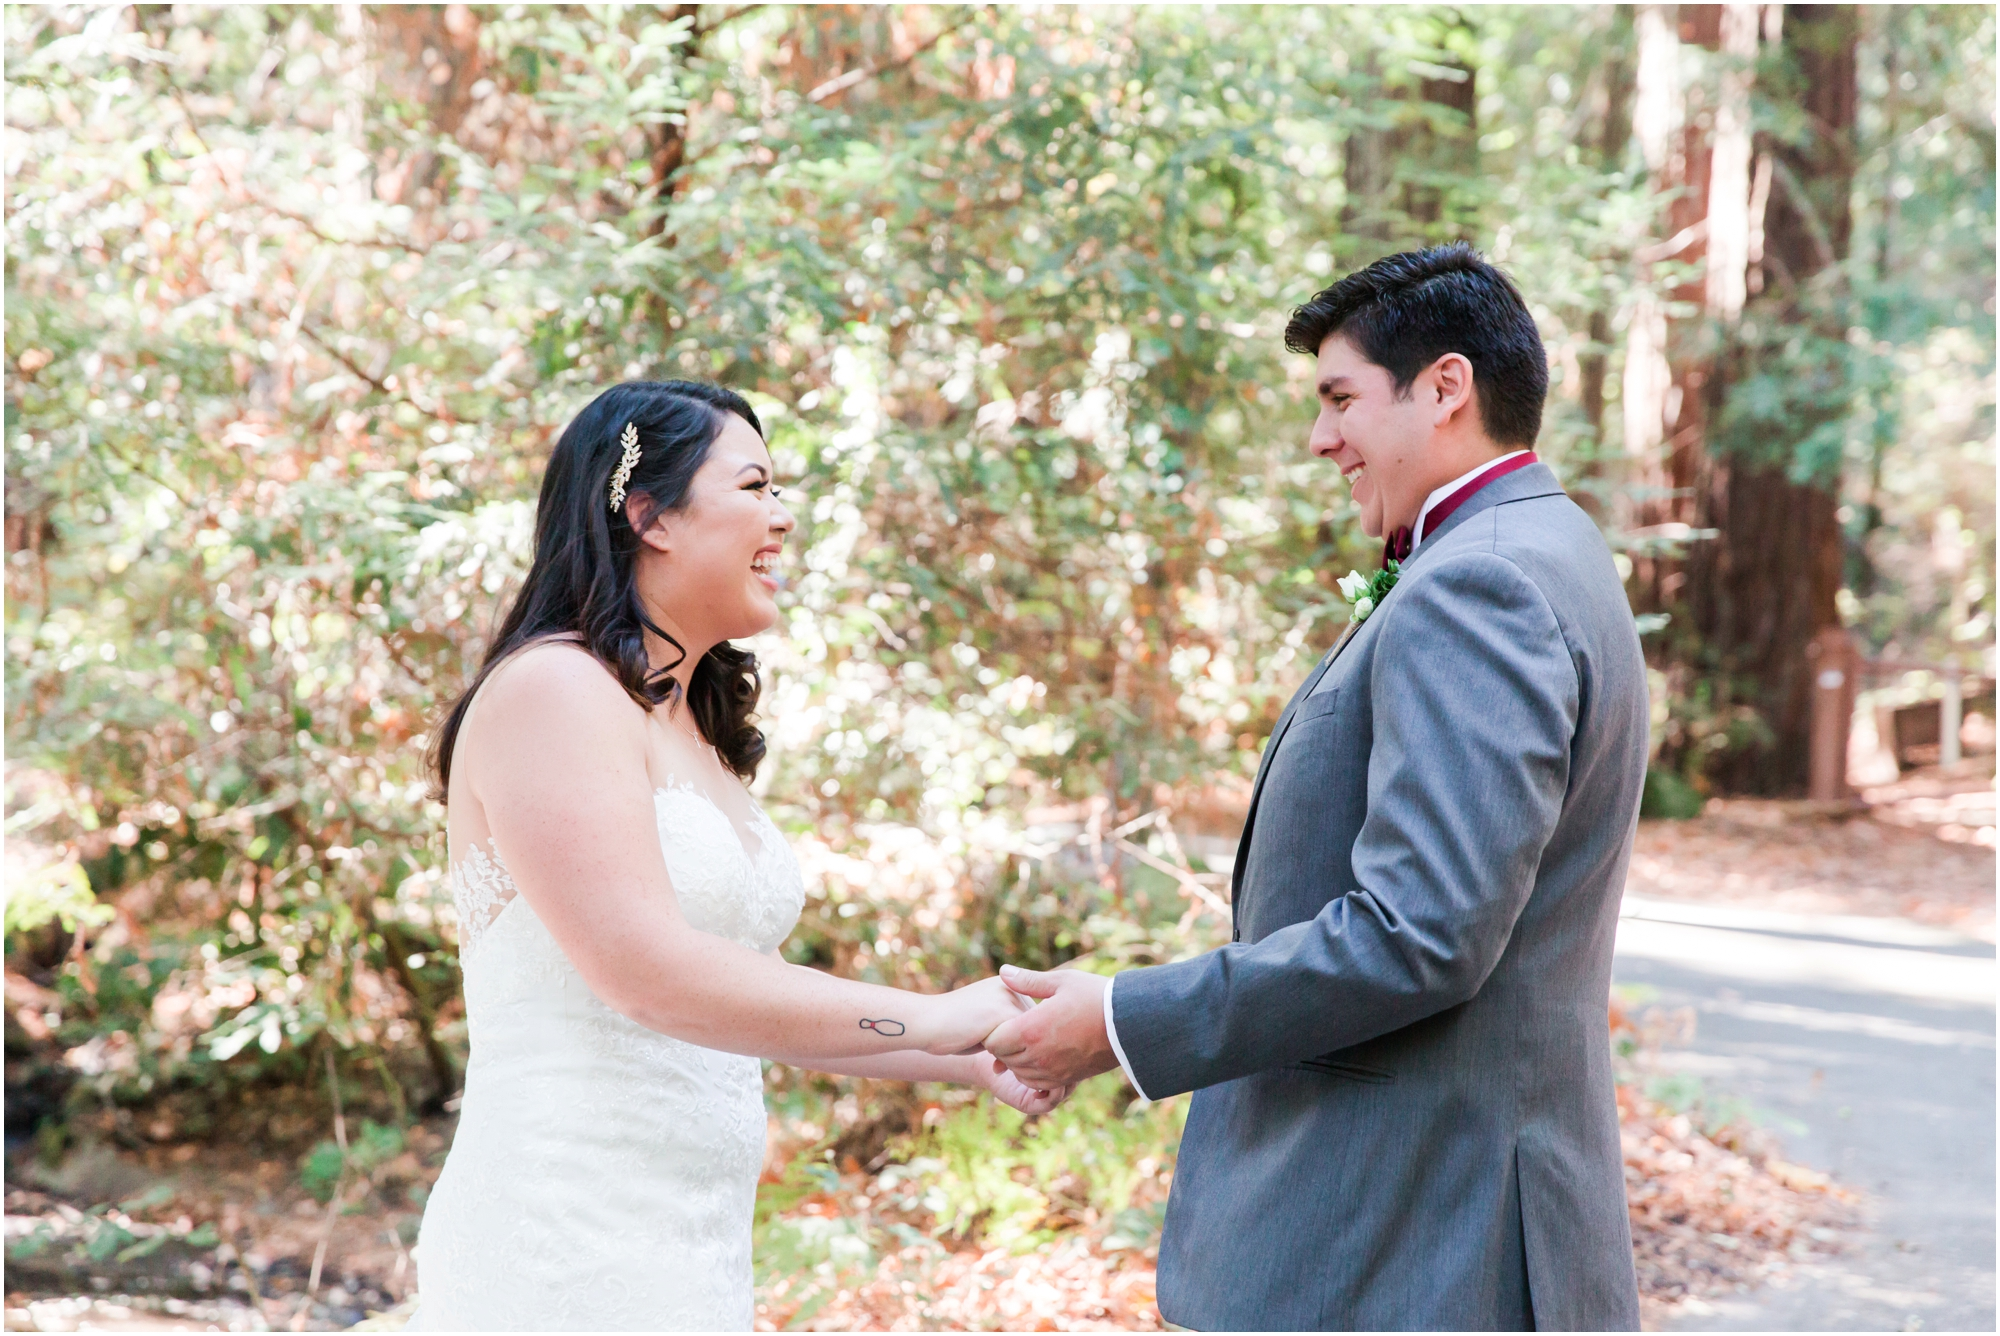 Sanborn Park Saratoga wedding pictures by Briana Calderon Photography_0113.jpg